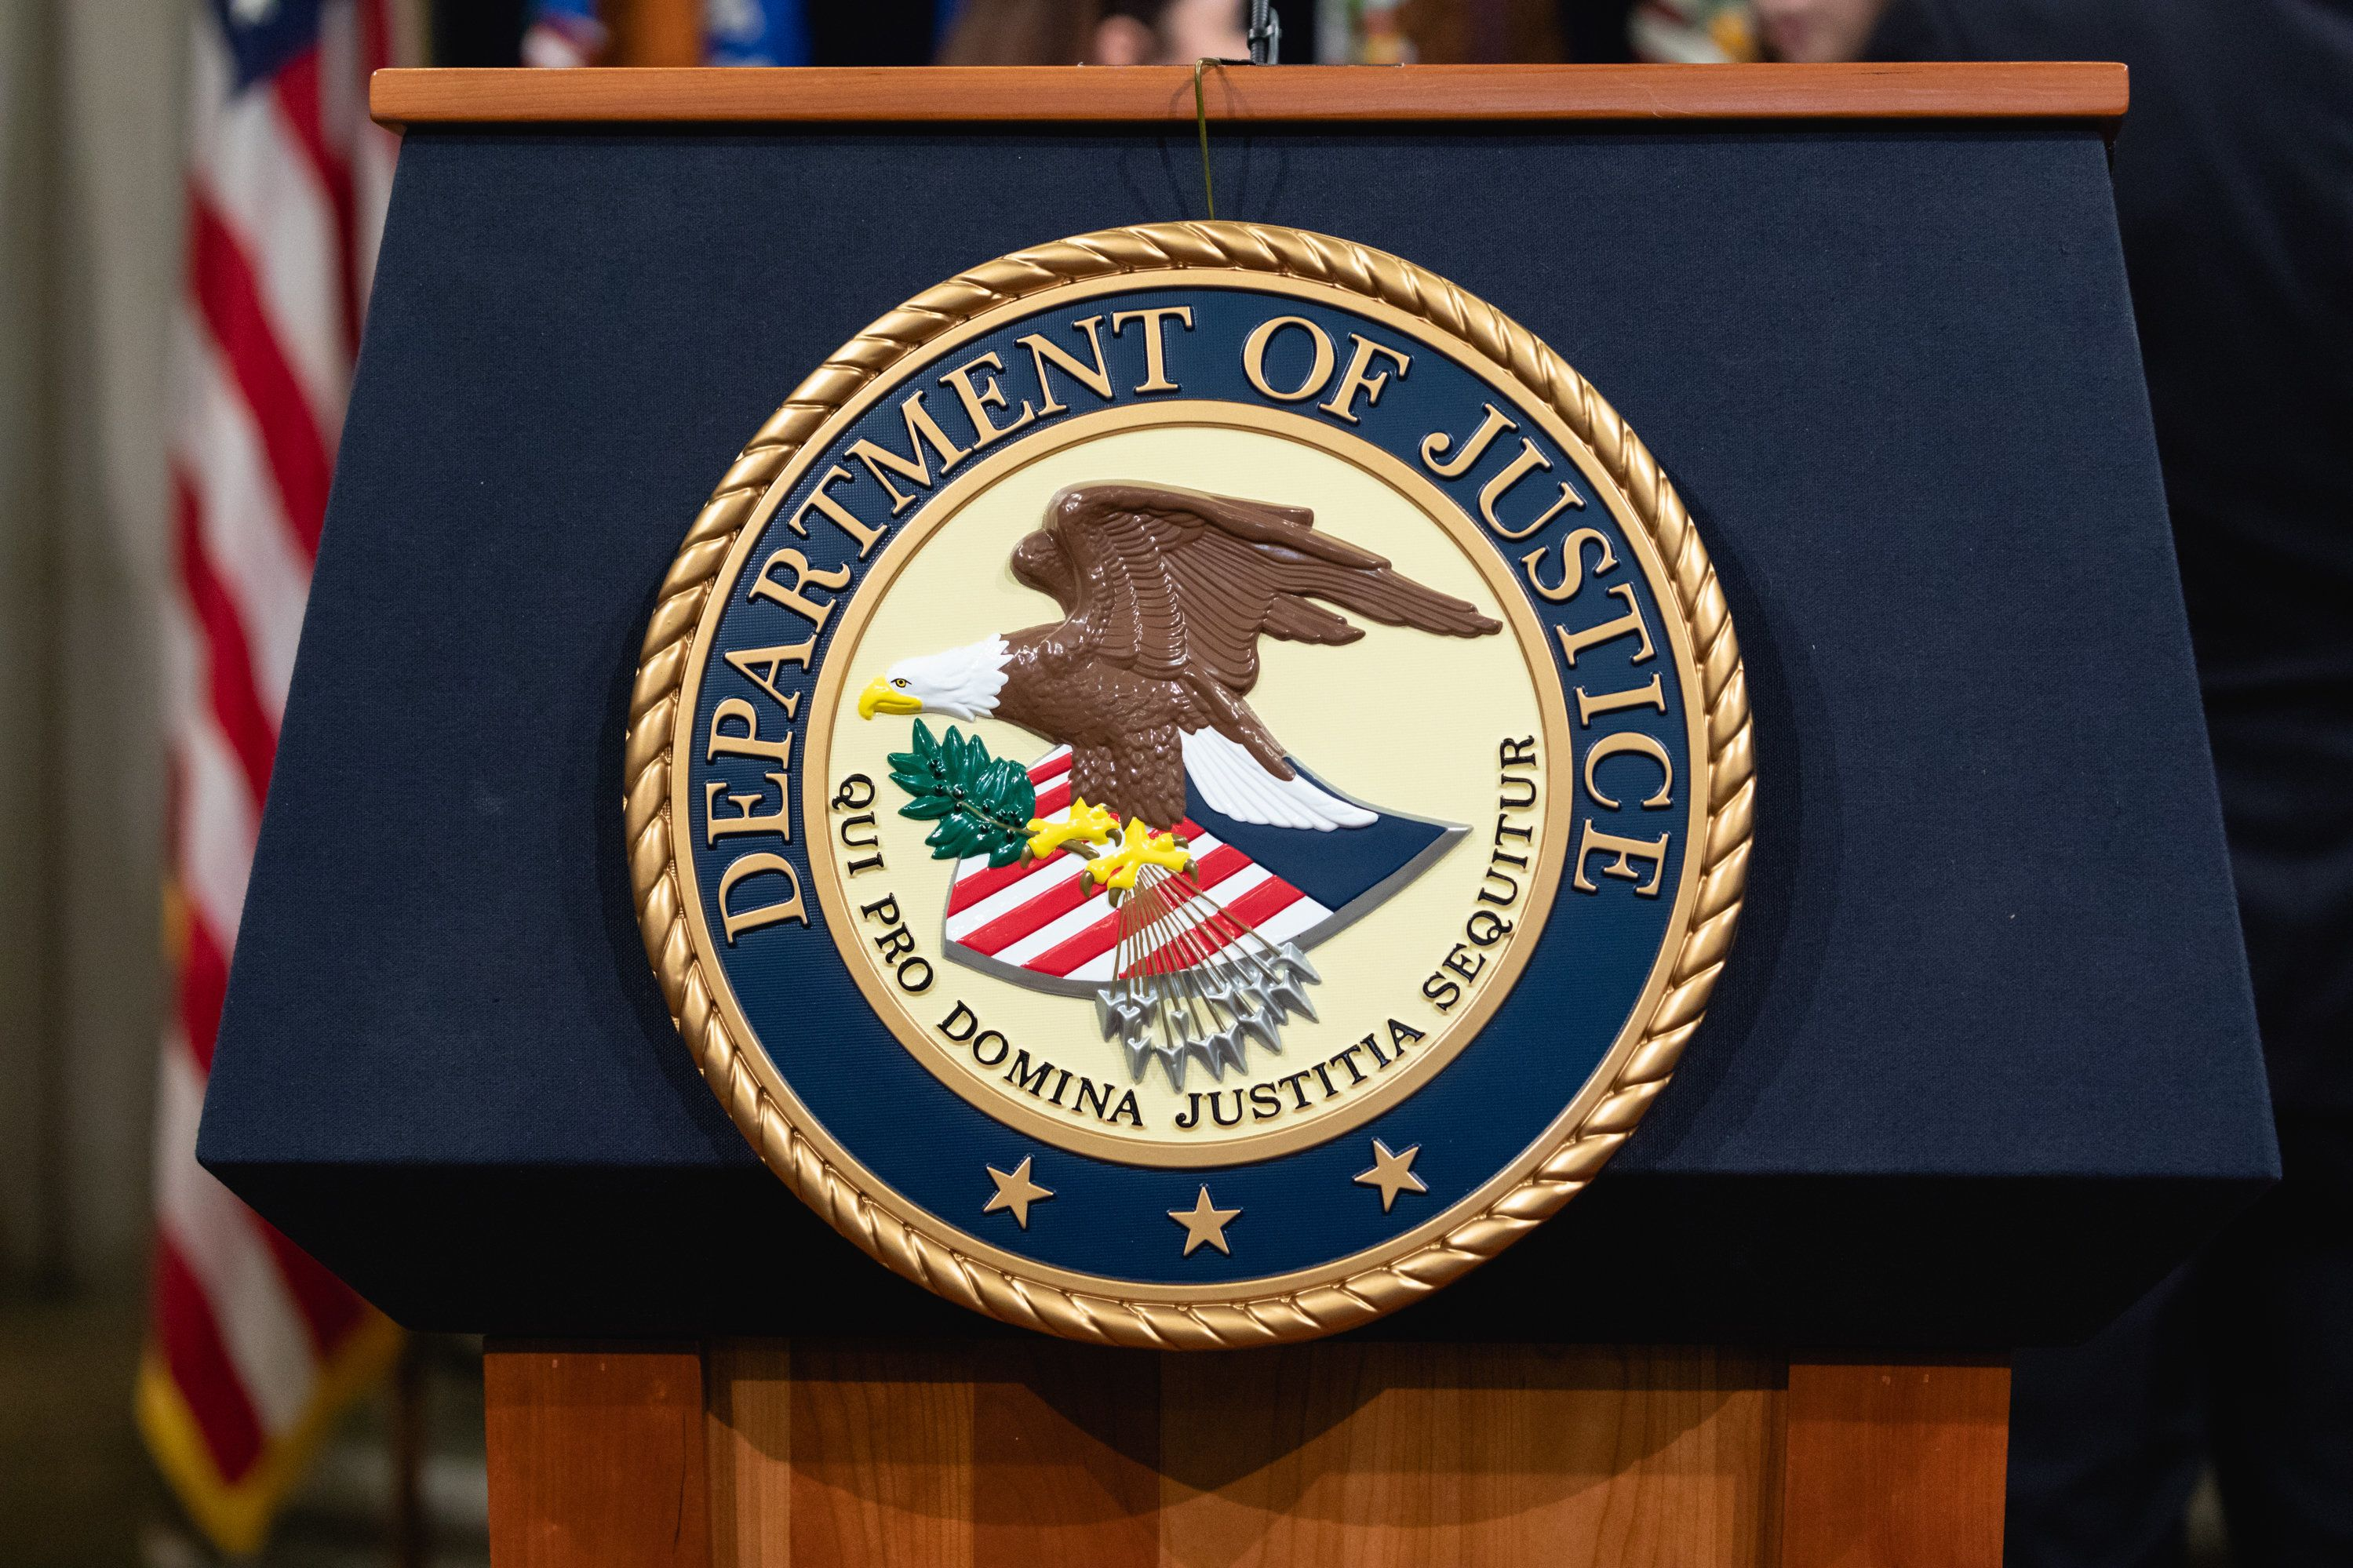 The Department of Justice seal, in Washington, D.C. on Thursday, April 12, 2018. (Photo by Cheriss May/NurPhoto via Getty Images)